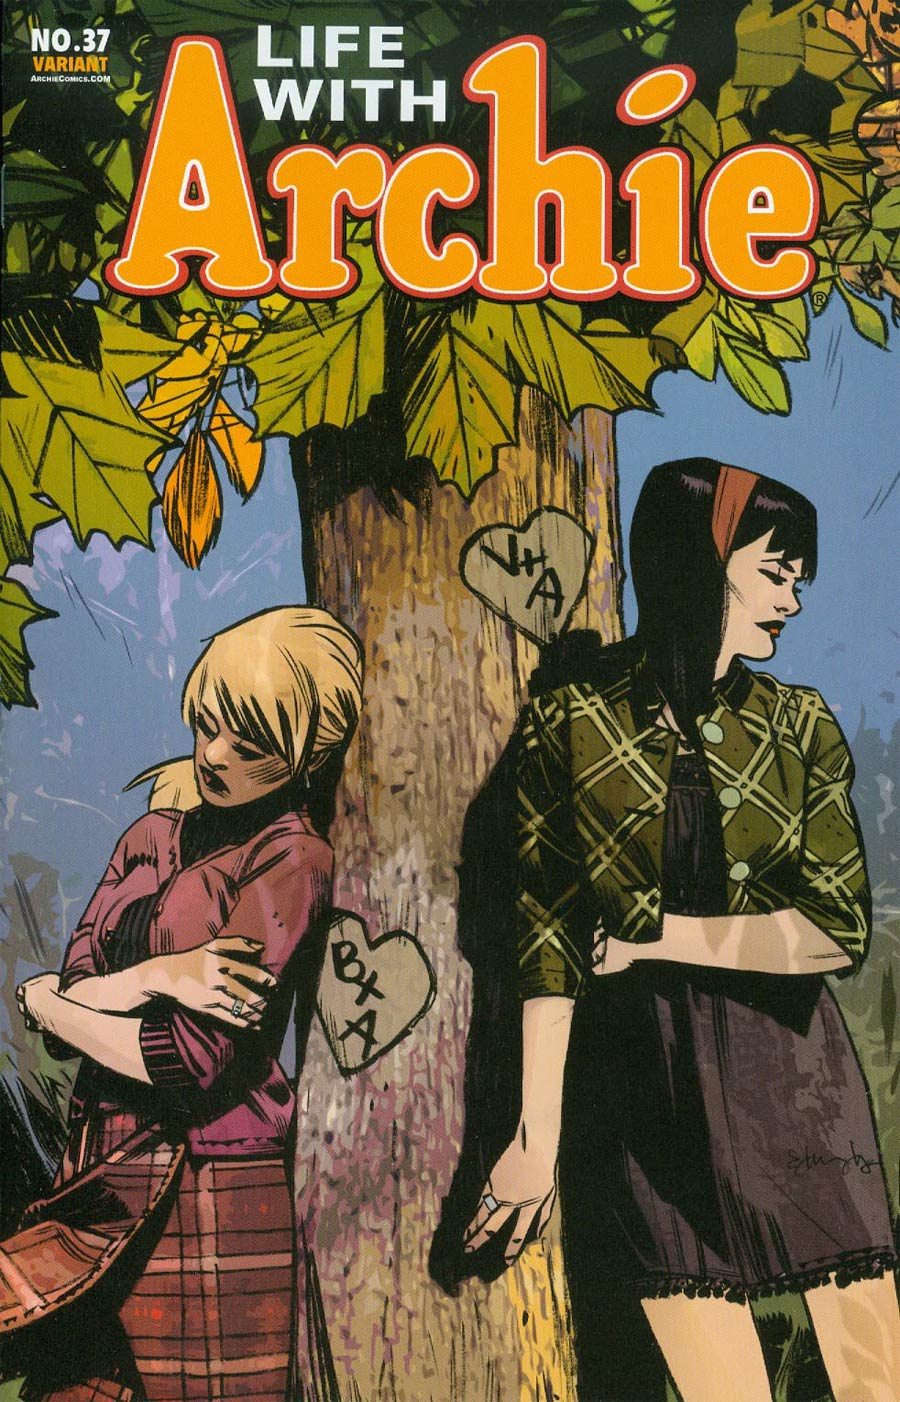 Life With Archie Vol 2 #37 Cover B Comic Format Tommy Lee Edwards Cover